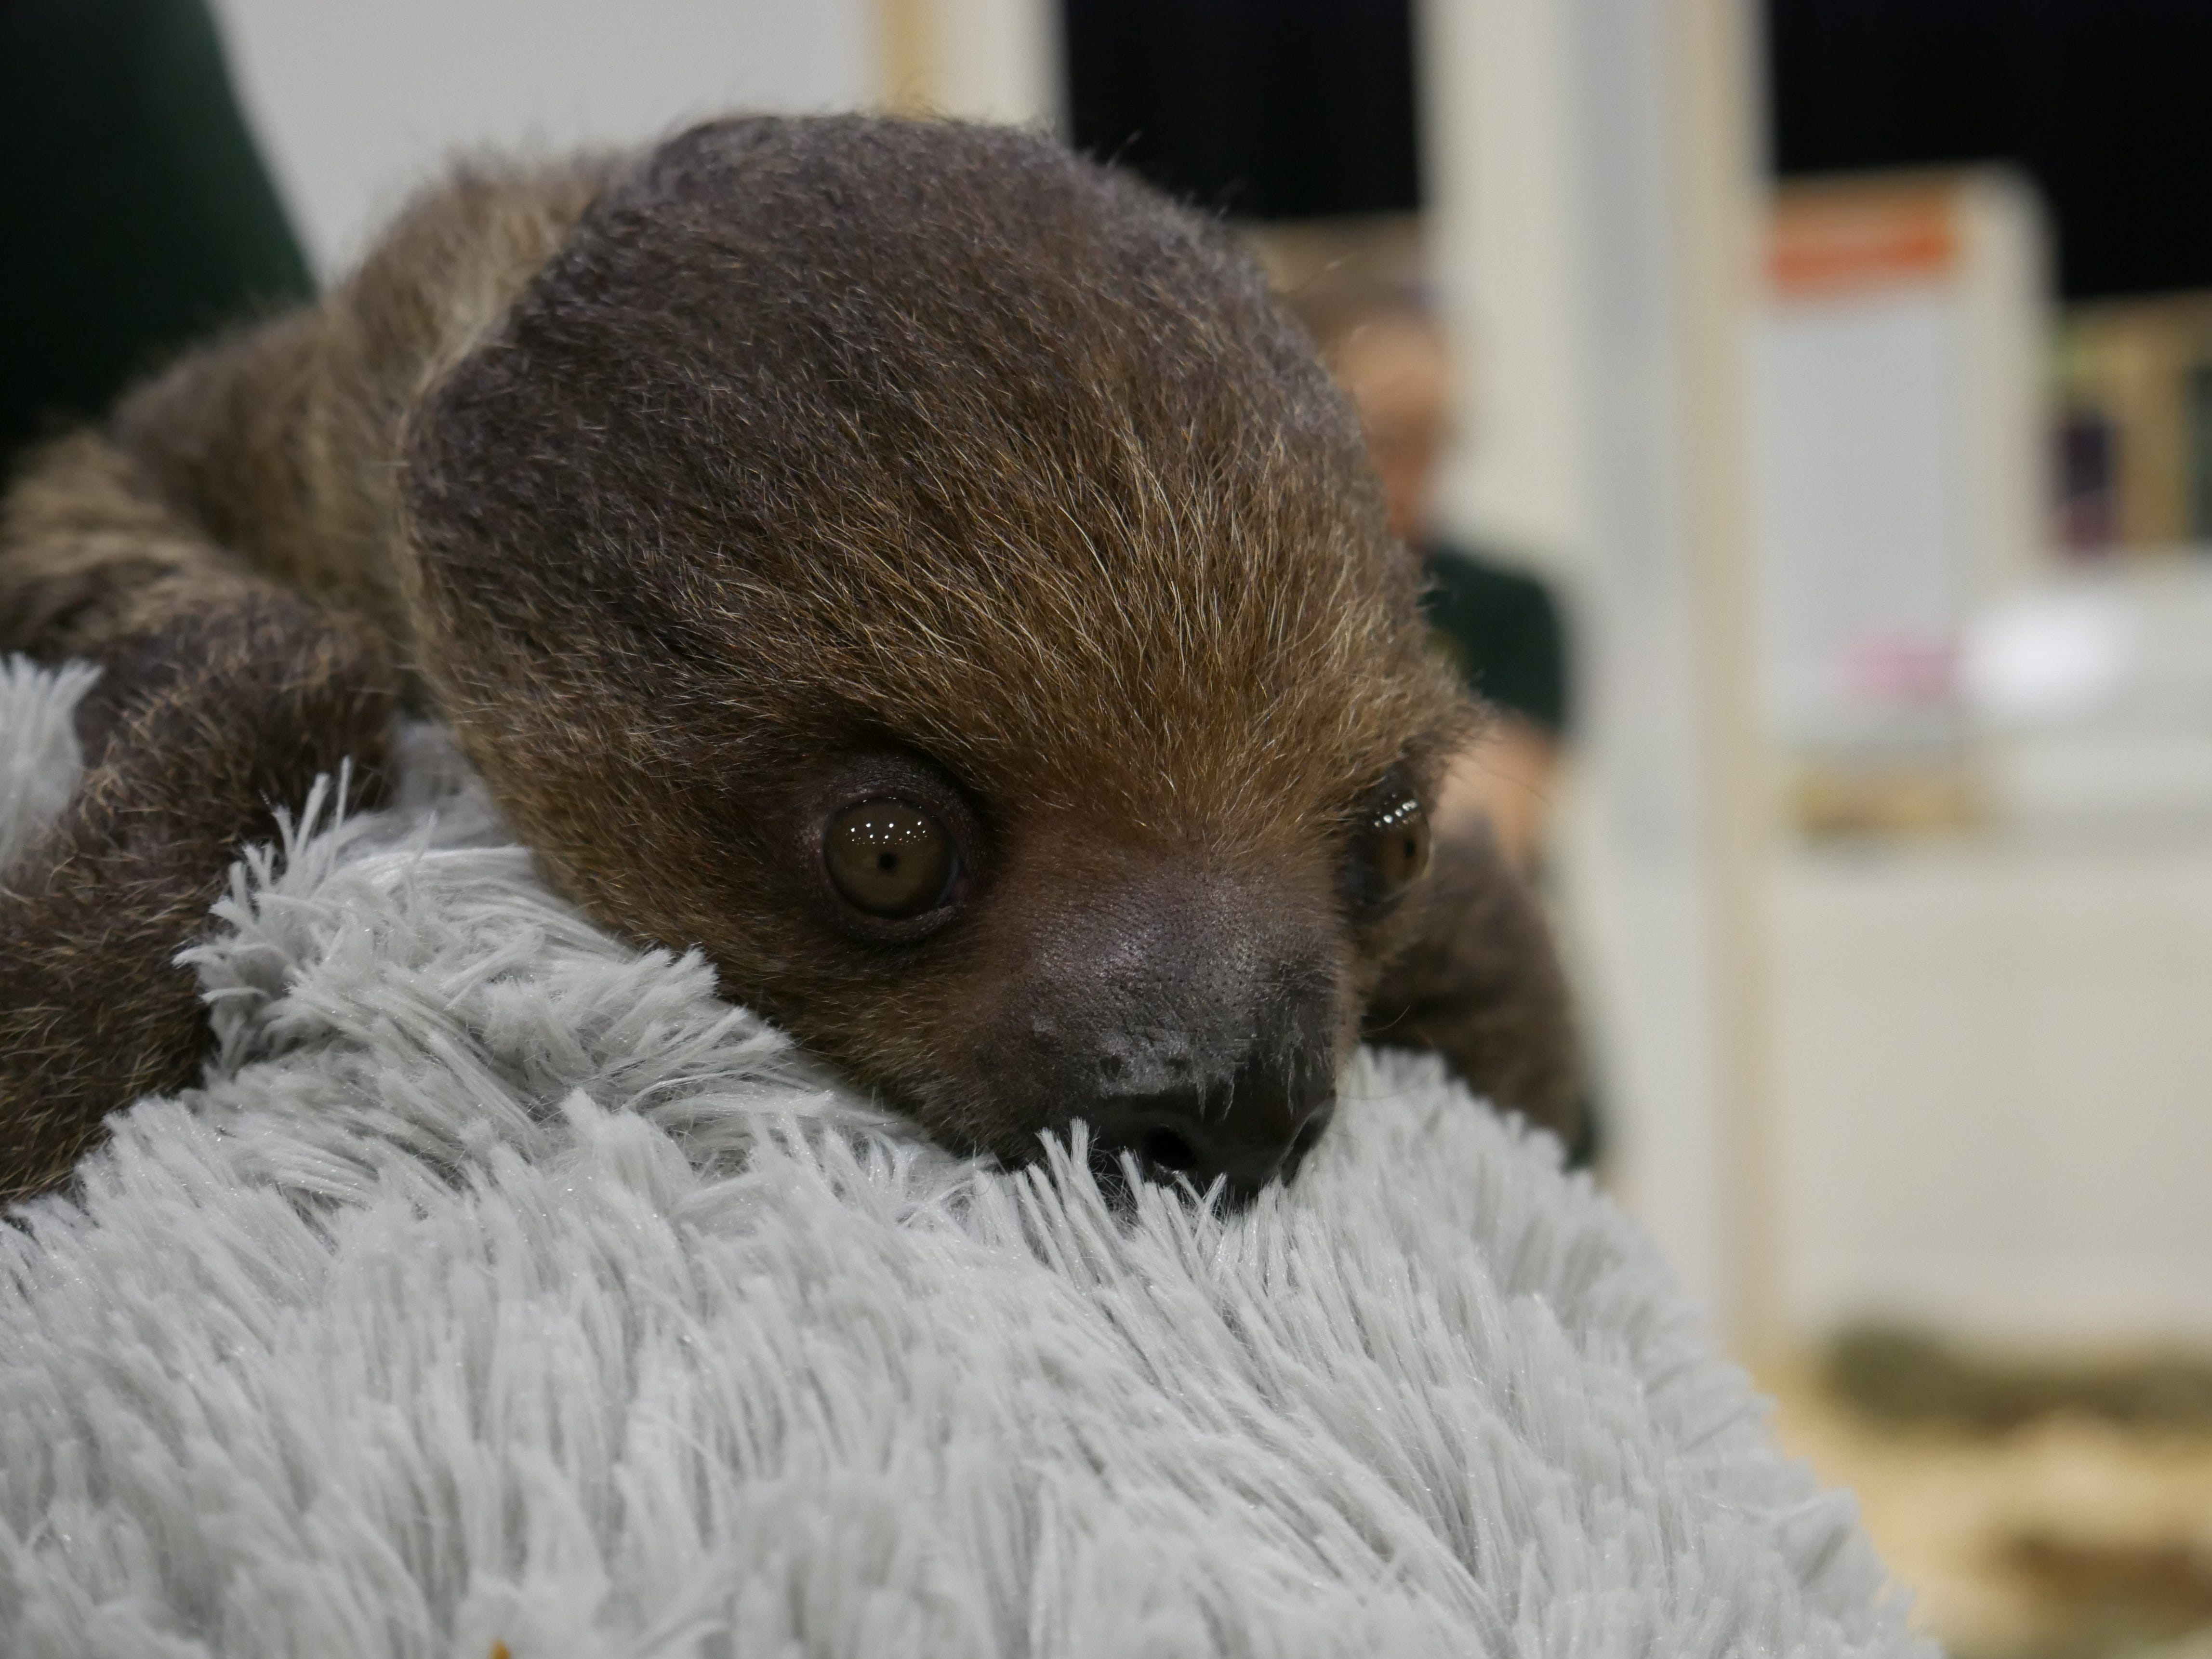 Flash, a two-toed sloth, cuddles a stuffed sloth at the Natural History Exhibition on Nov. 17, 2018, at the Mid-Hudson Civic Center in Poughkeepsie. Little Ray's Nature Centers and ZooAmerica coordinated with the Foundation for Animal Rescue and Education for the weekend-long exhibit, which also features a porcupine, an armadillo, rabbits, snakes, tarantulas and more.